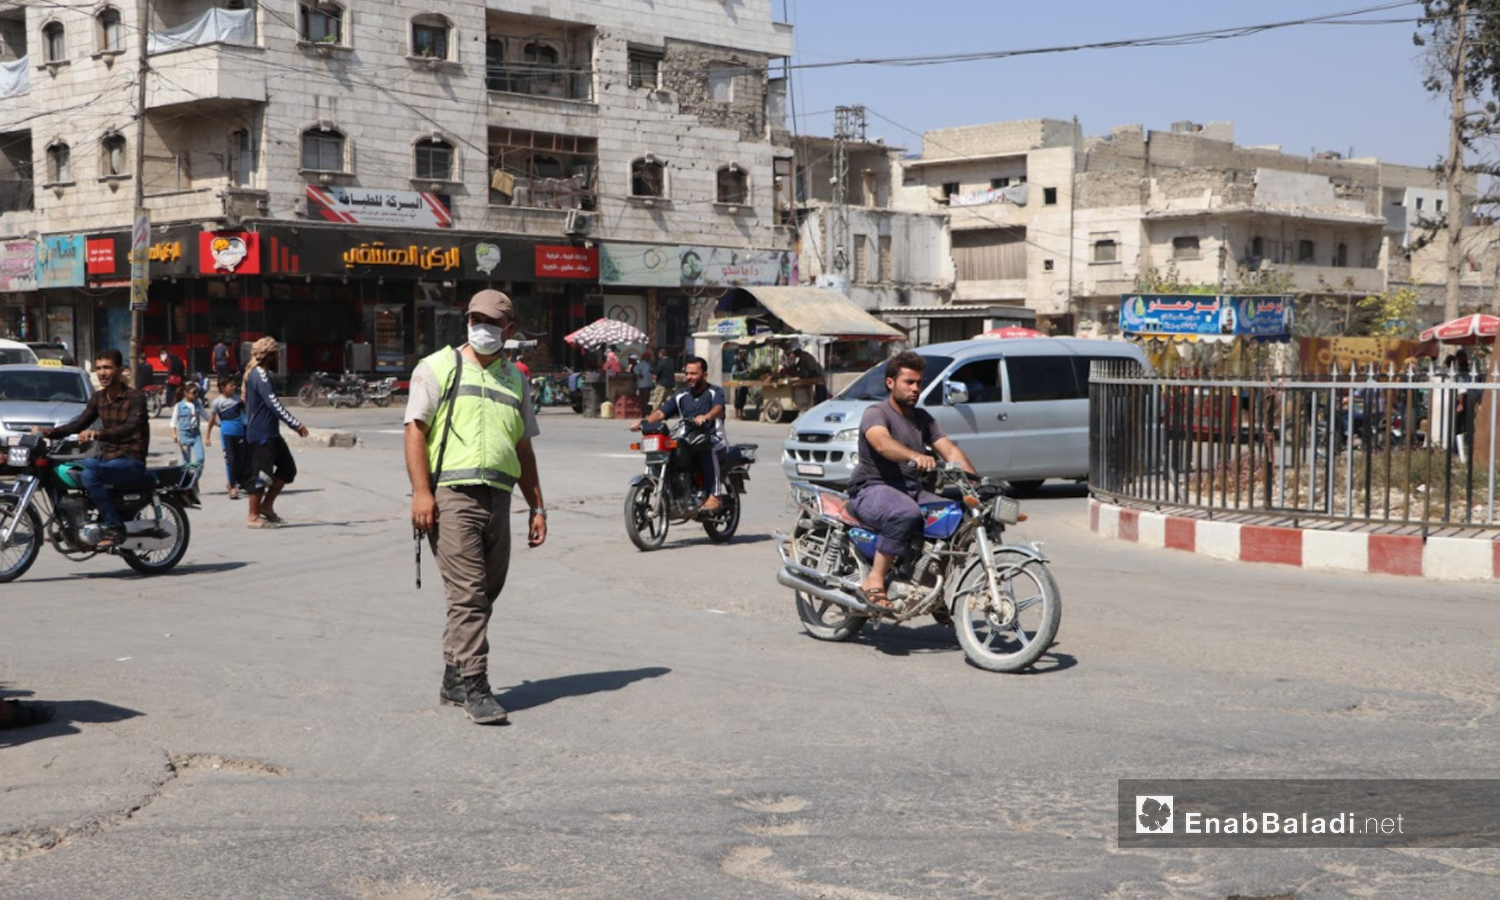 One of the security forces of the al-Bab city's local council in northern Aleppo countryside while watching the traffic - September 2020 (Enab Baladi)